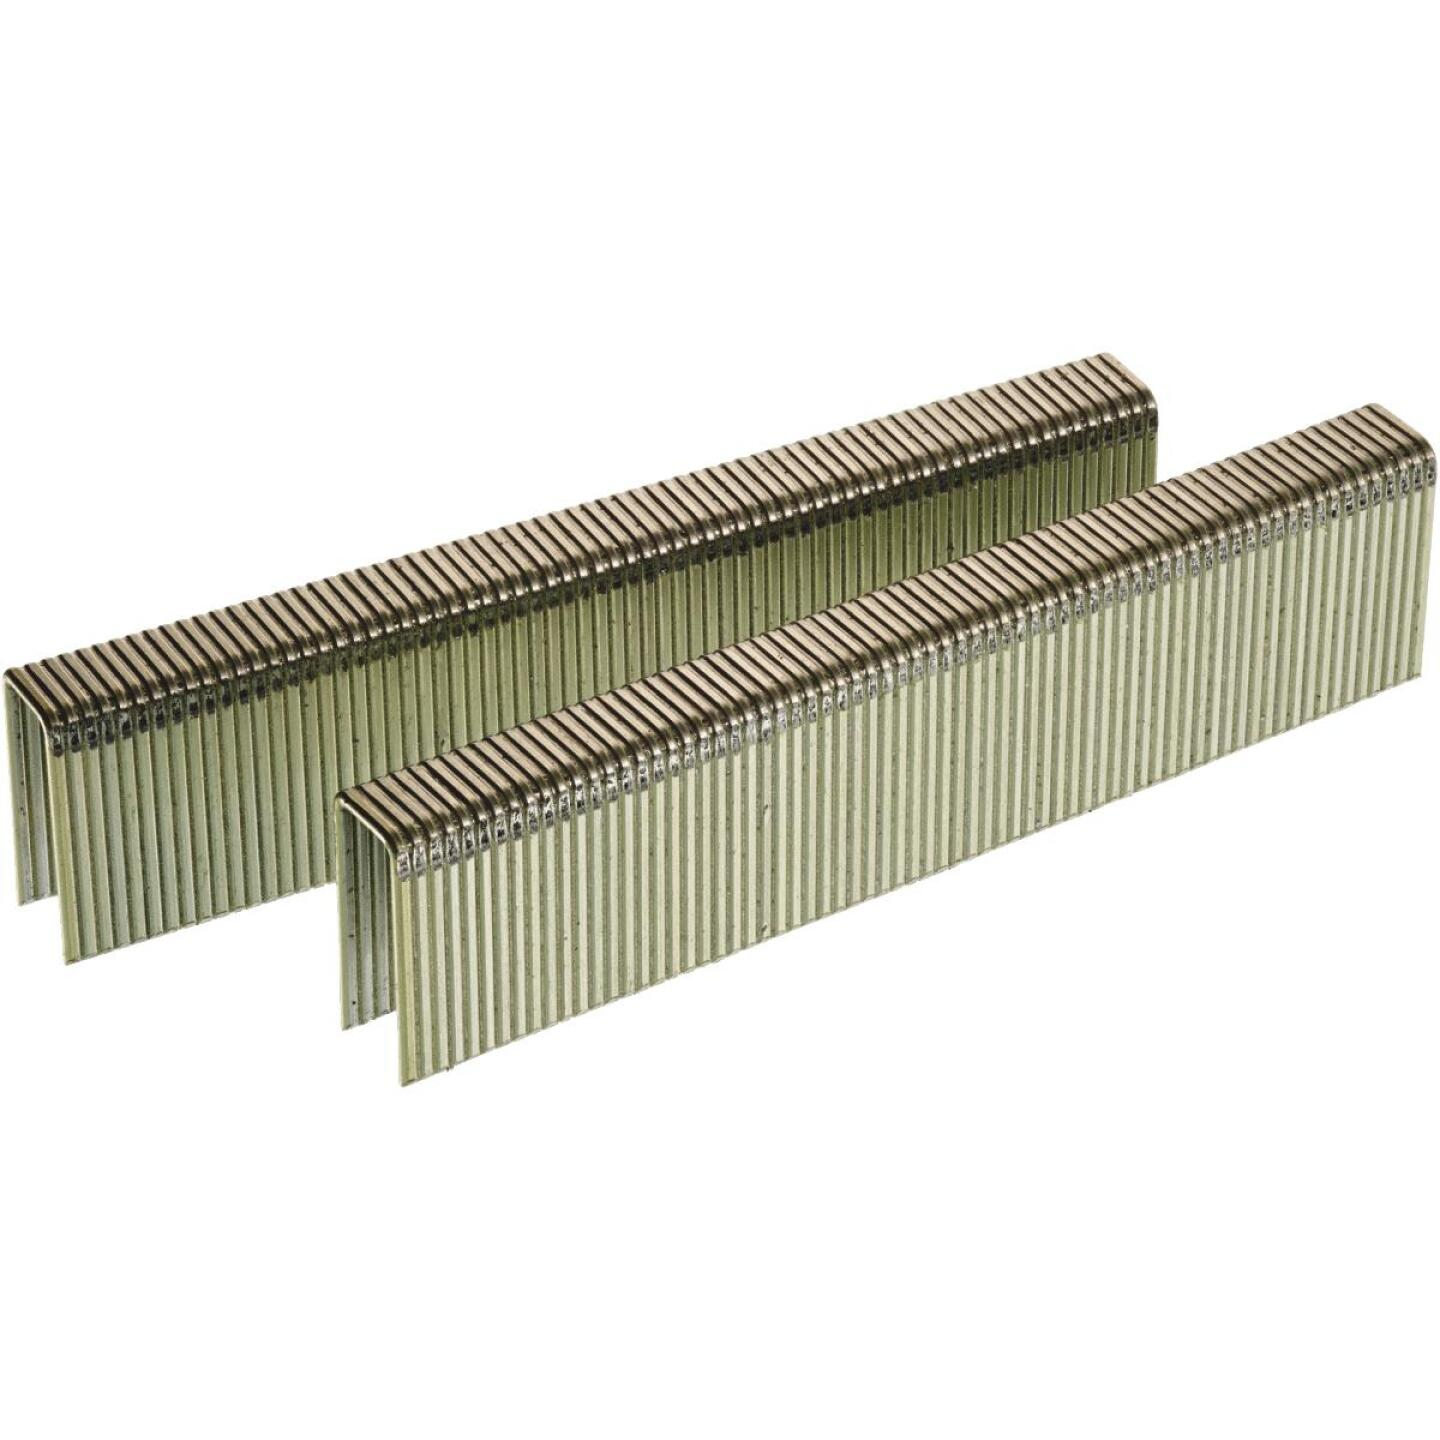 Senco 16-Gauge Galvanized Heavy Wire Decking Staples, 7/16 In. x 1 In. (5000 Ct.) Image 1